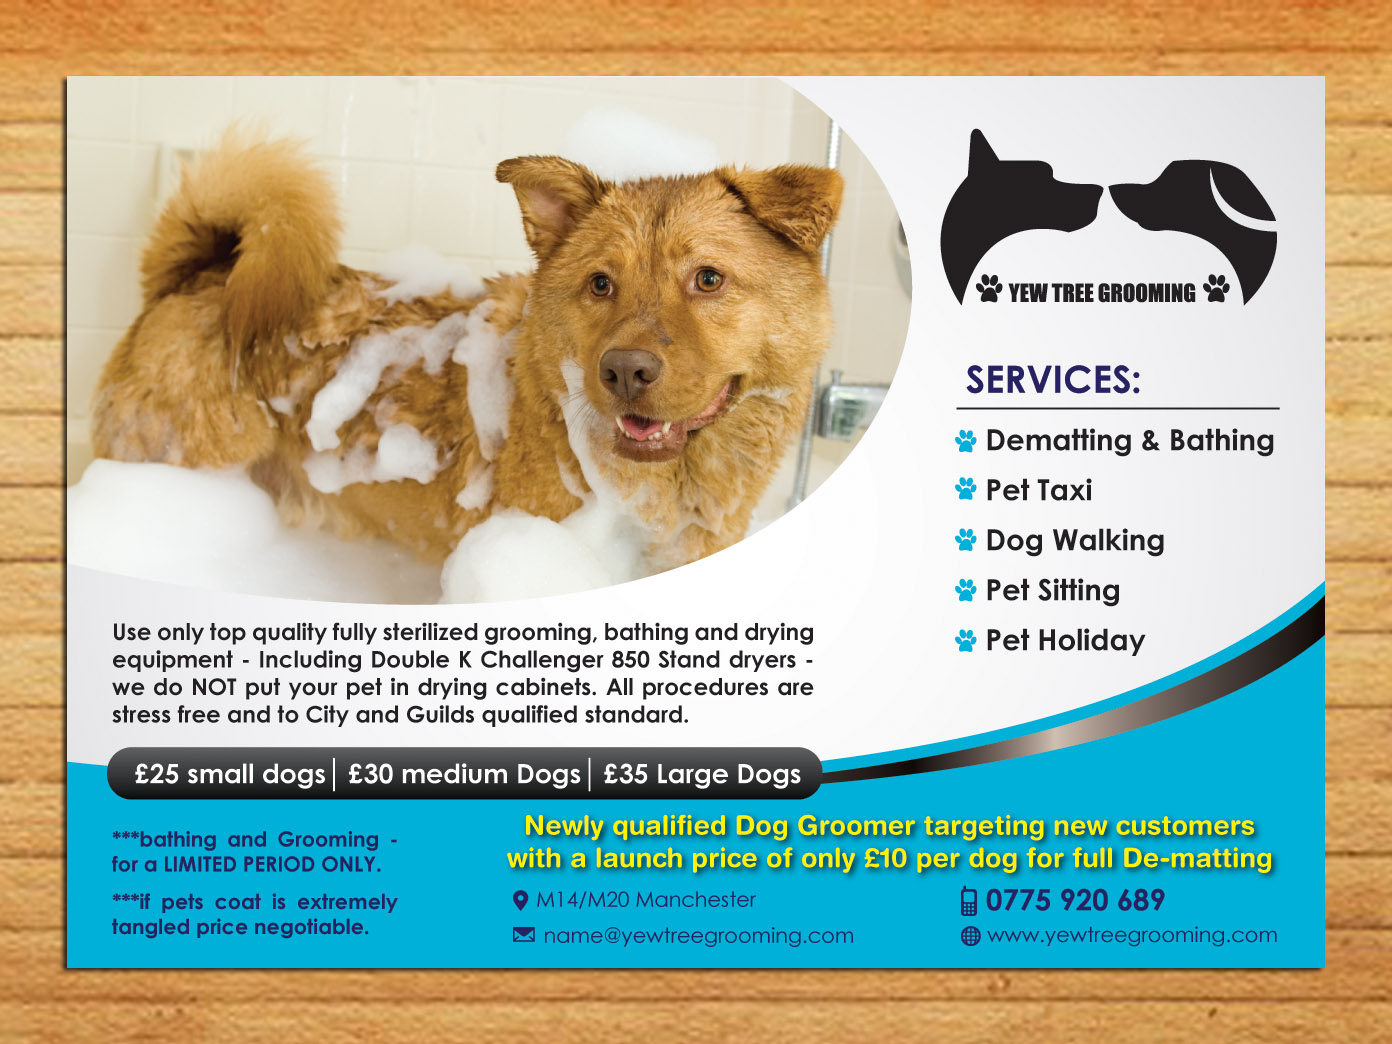 flyer design for yew tree dog grooming by smart design  flyer design by smart for dog grooming flyer design design 4494184